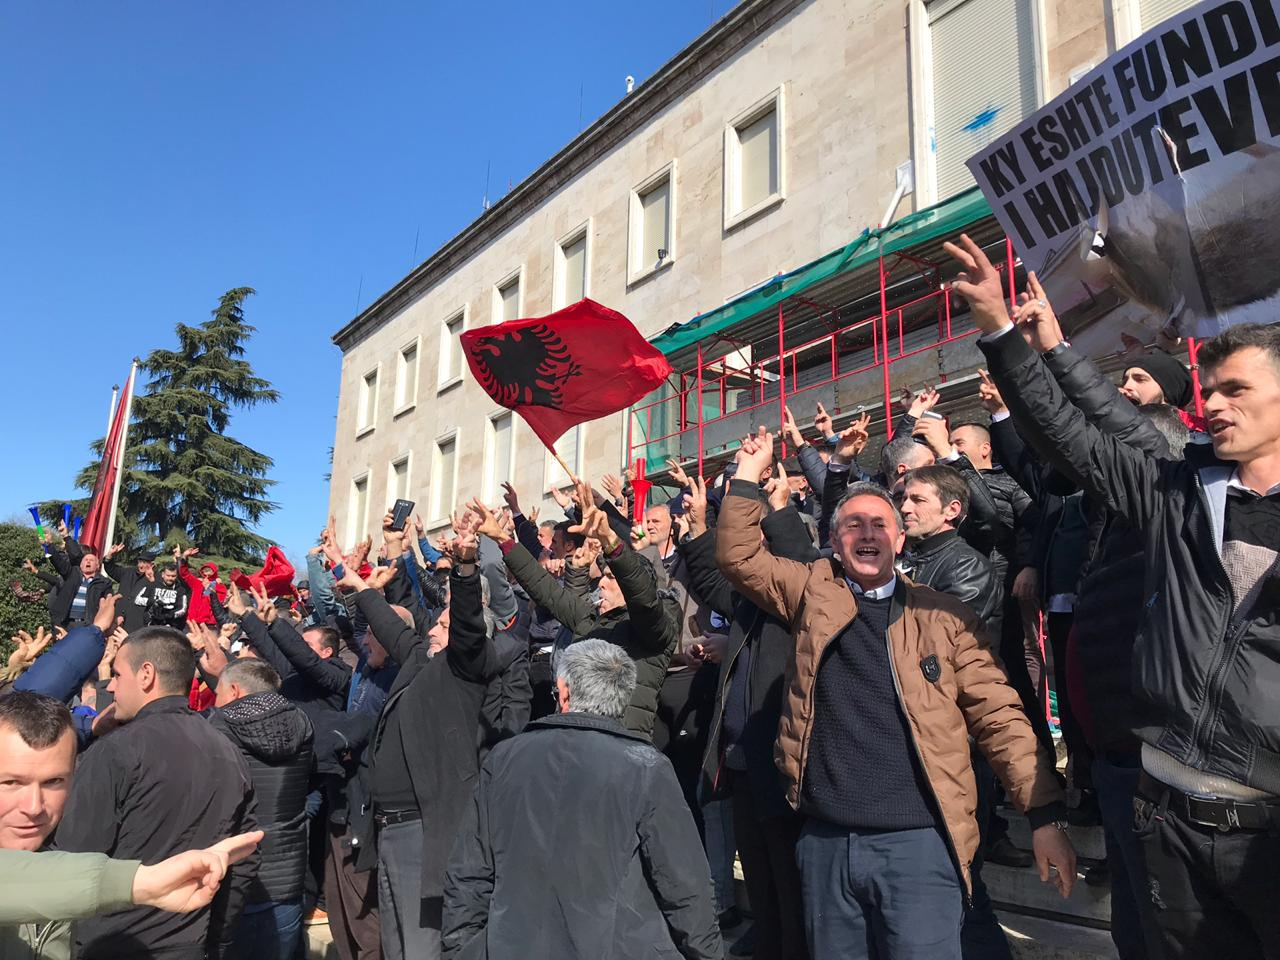 IBNA SPECIAL REPORT/ Opposition's protest in Tirana, violence and police reaction